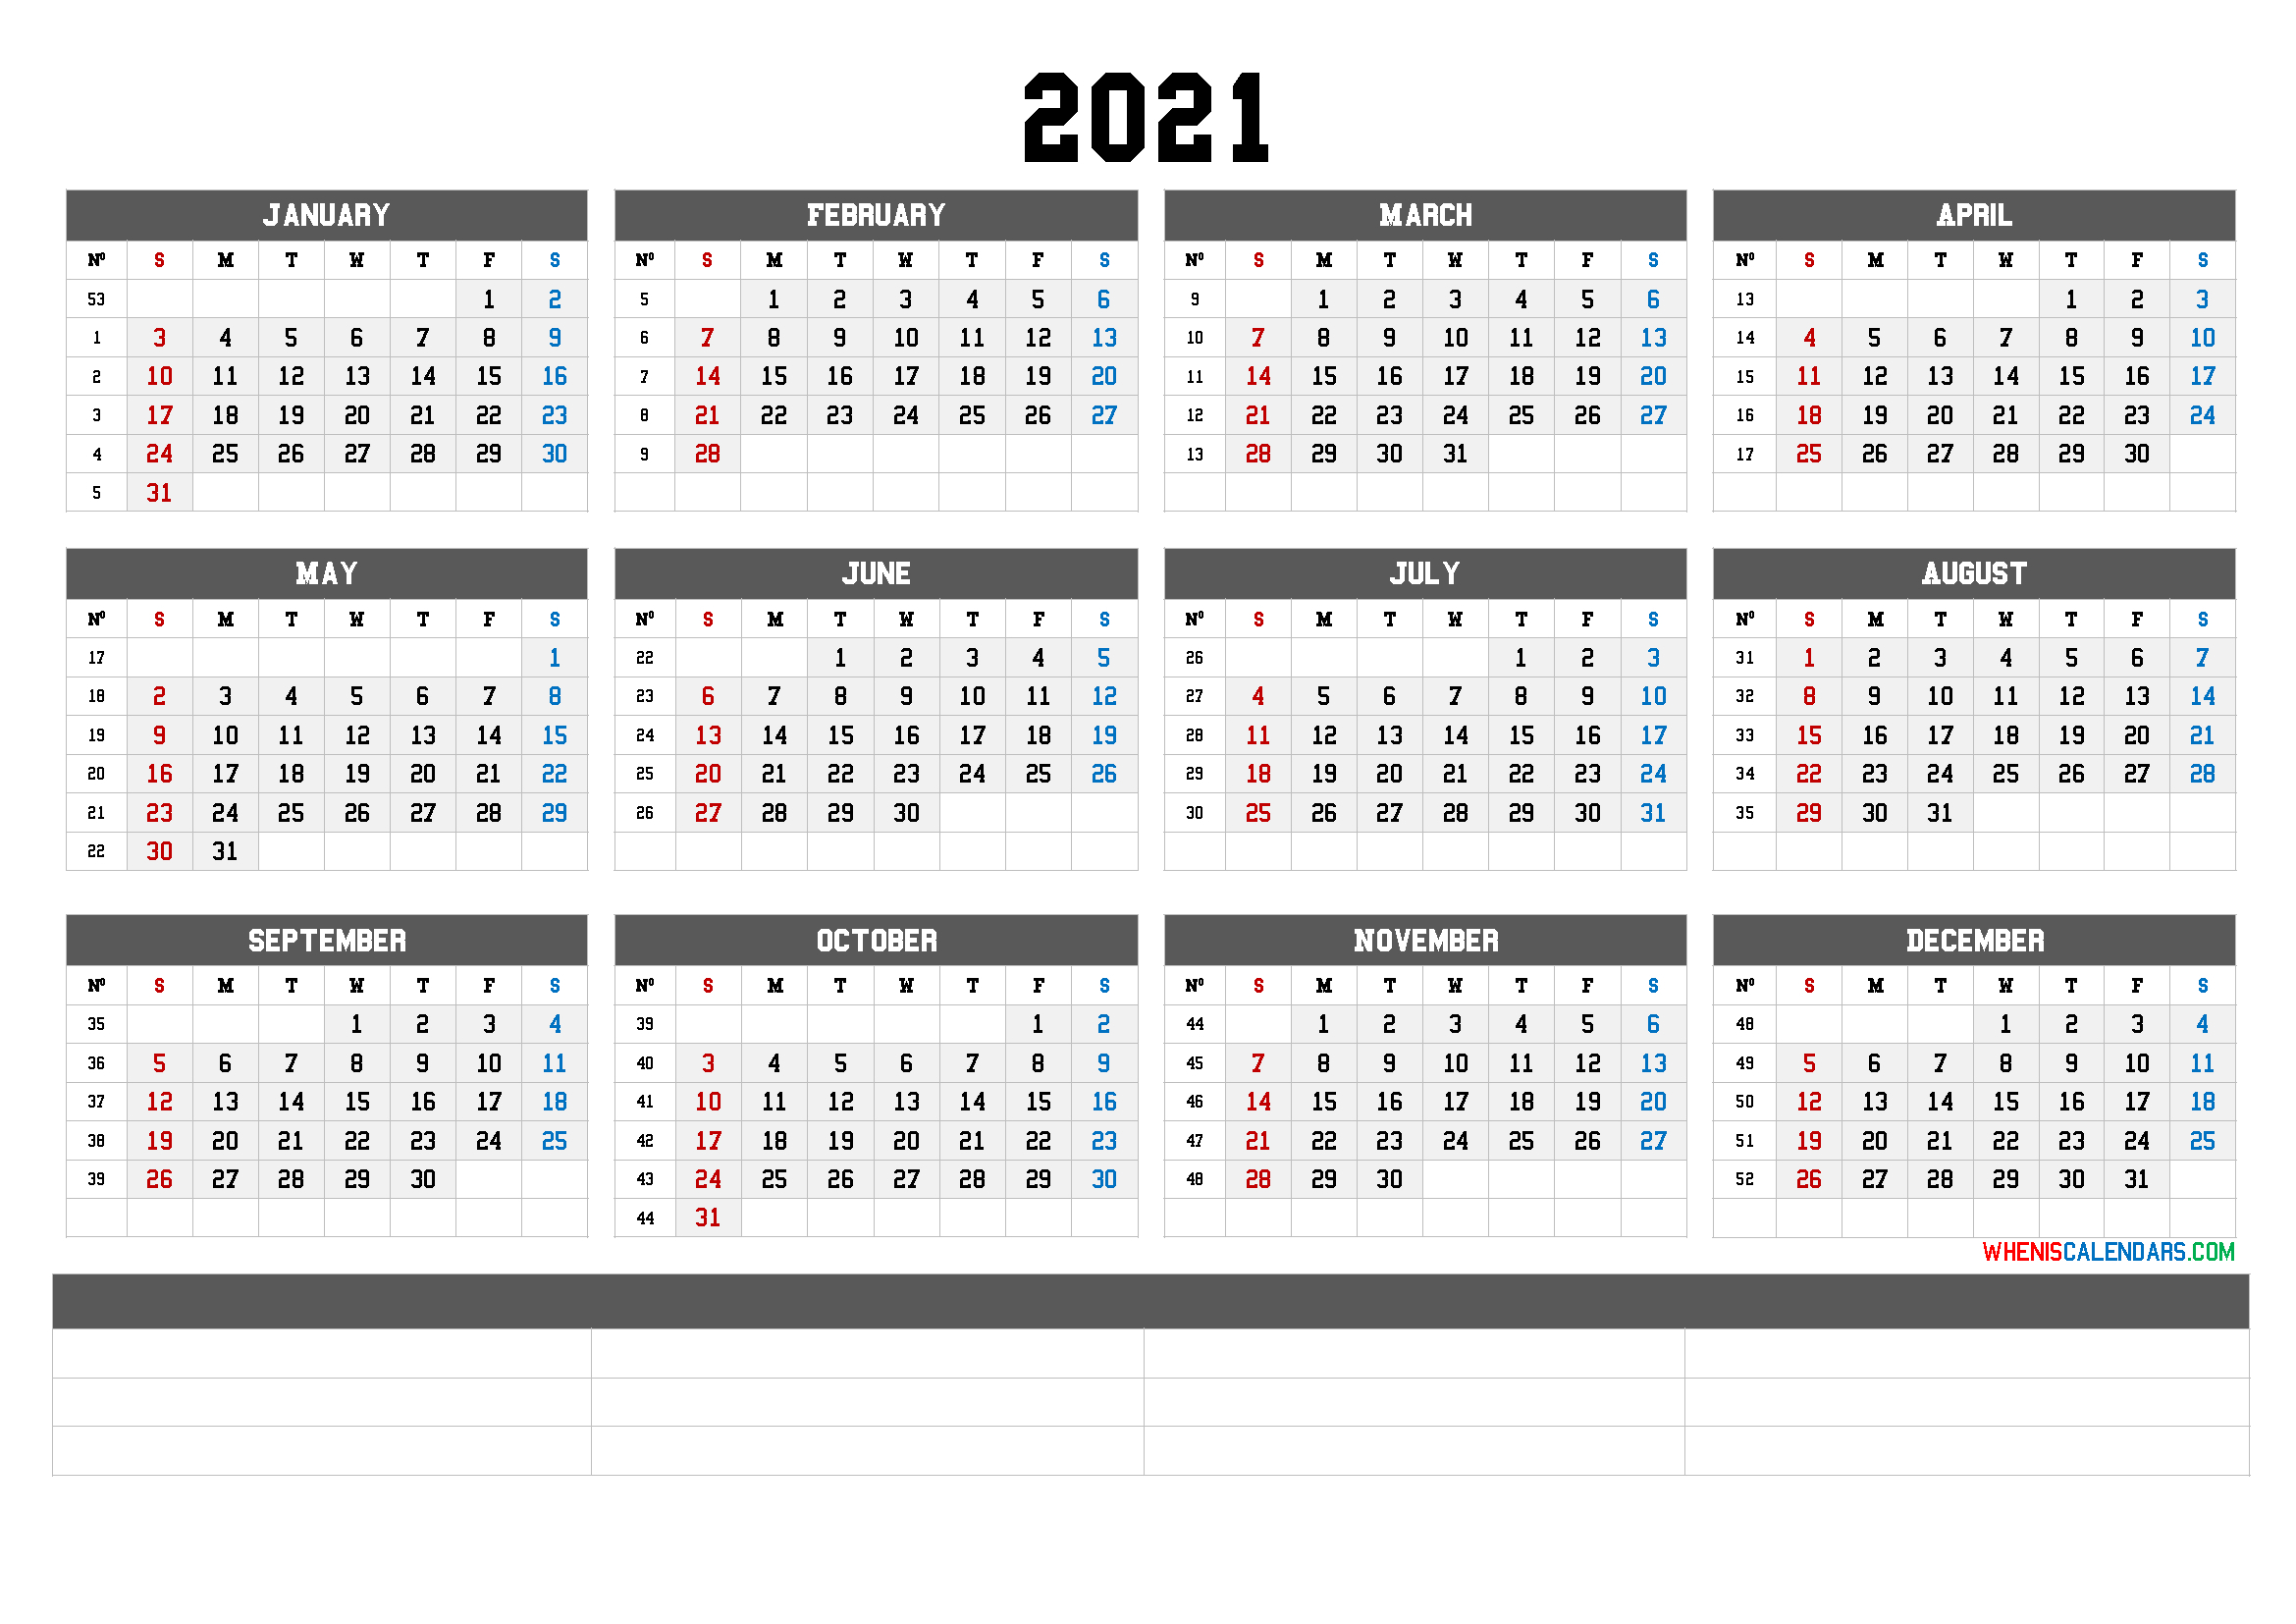 2021 Yearly Calendar Template Word (6 Templates) for Three Month Printable Calendar 2021